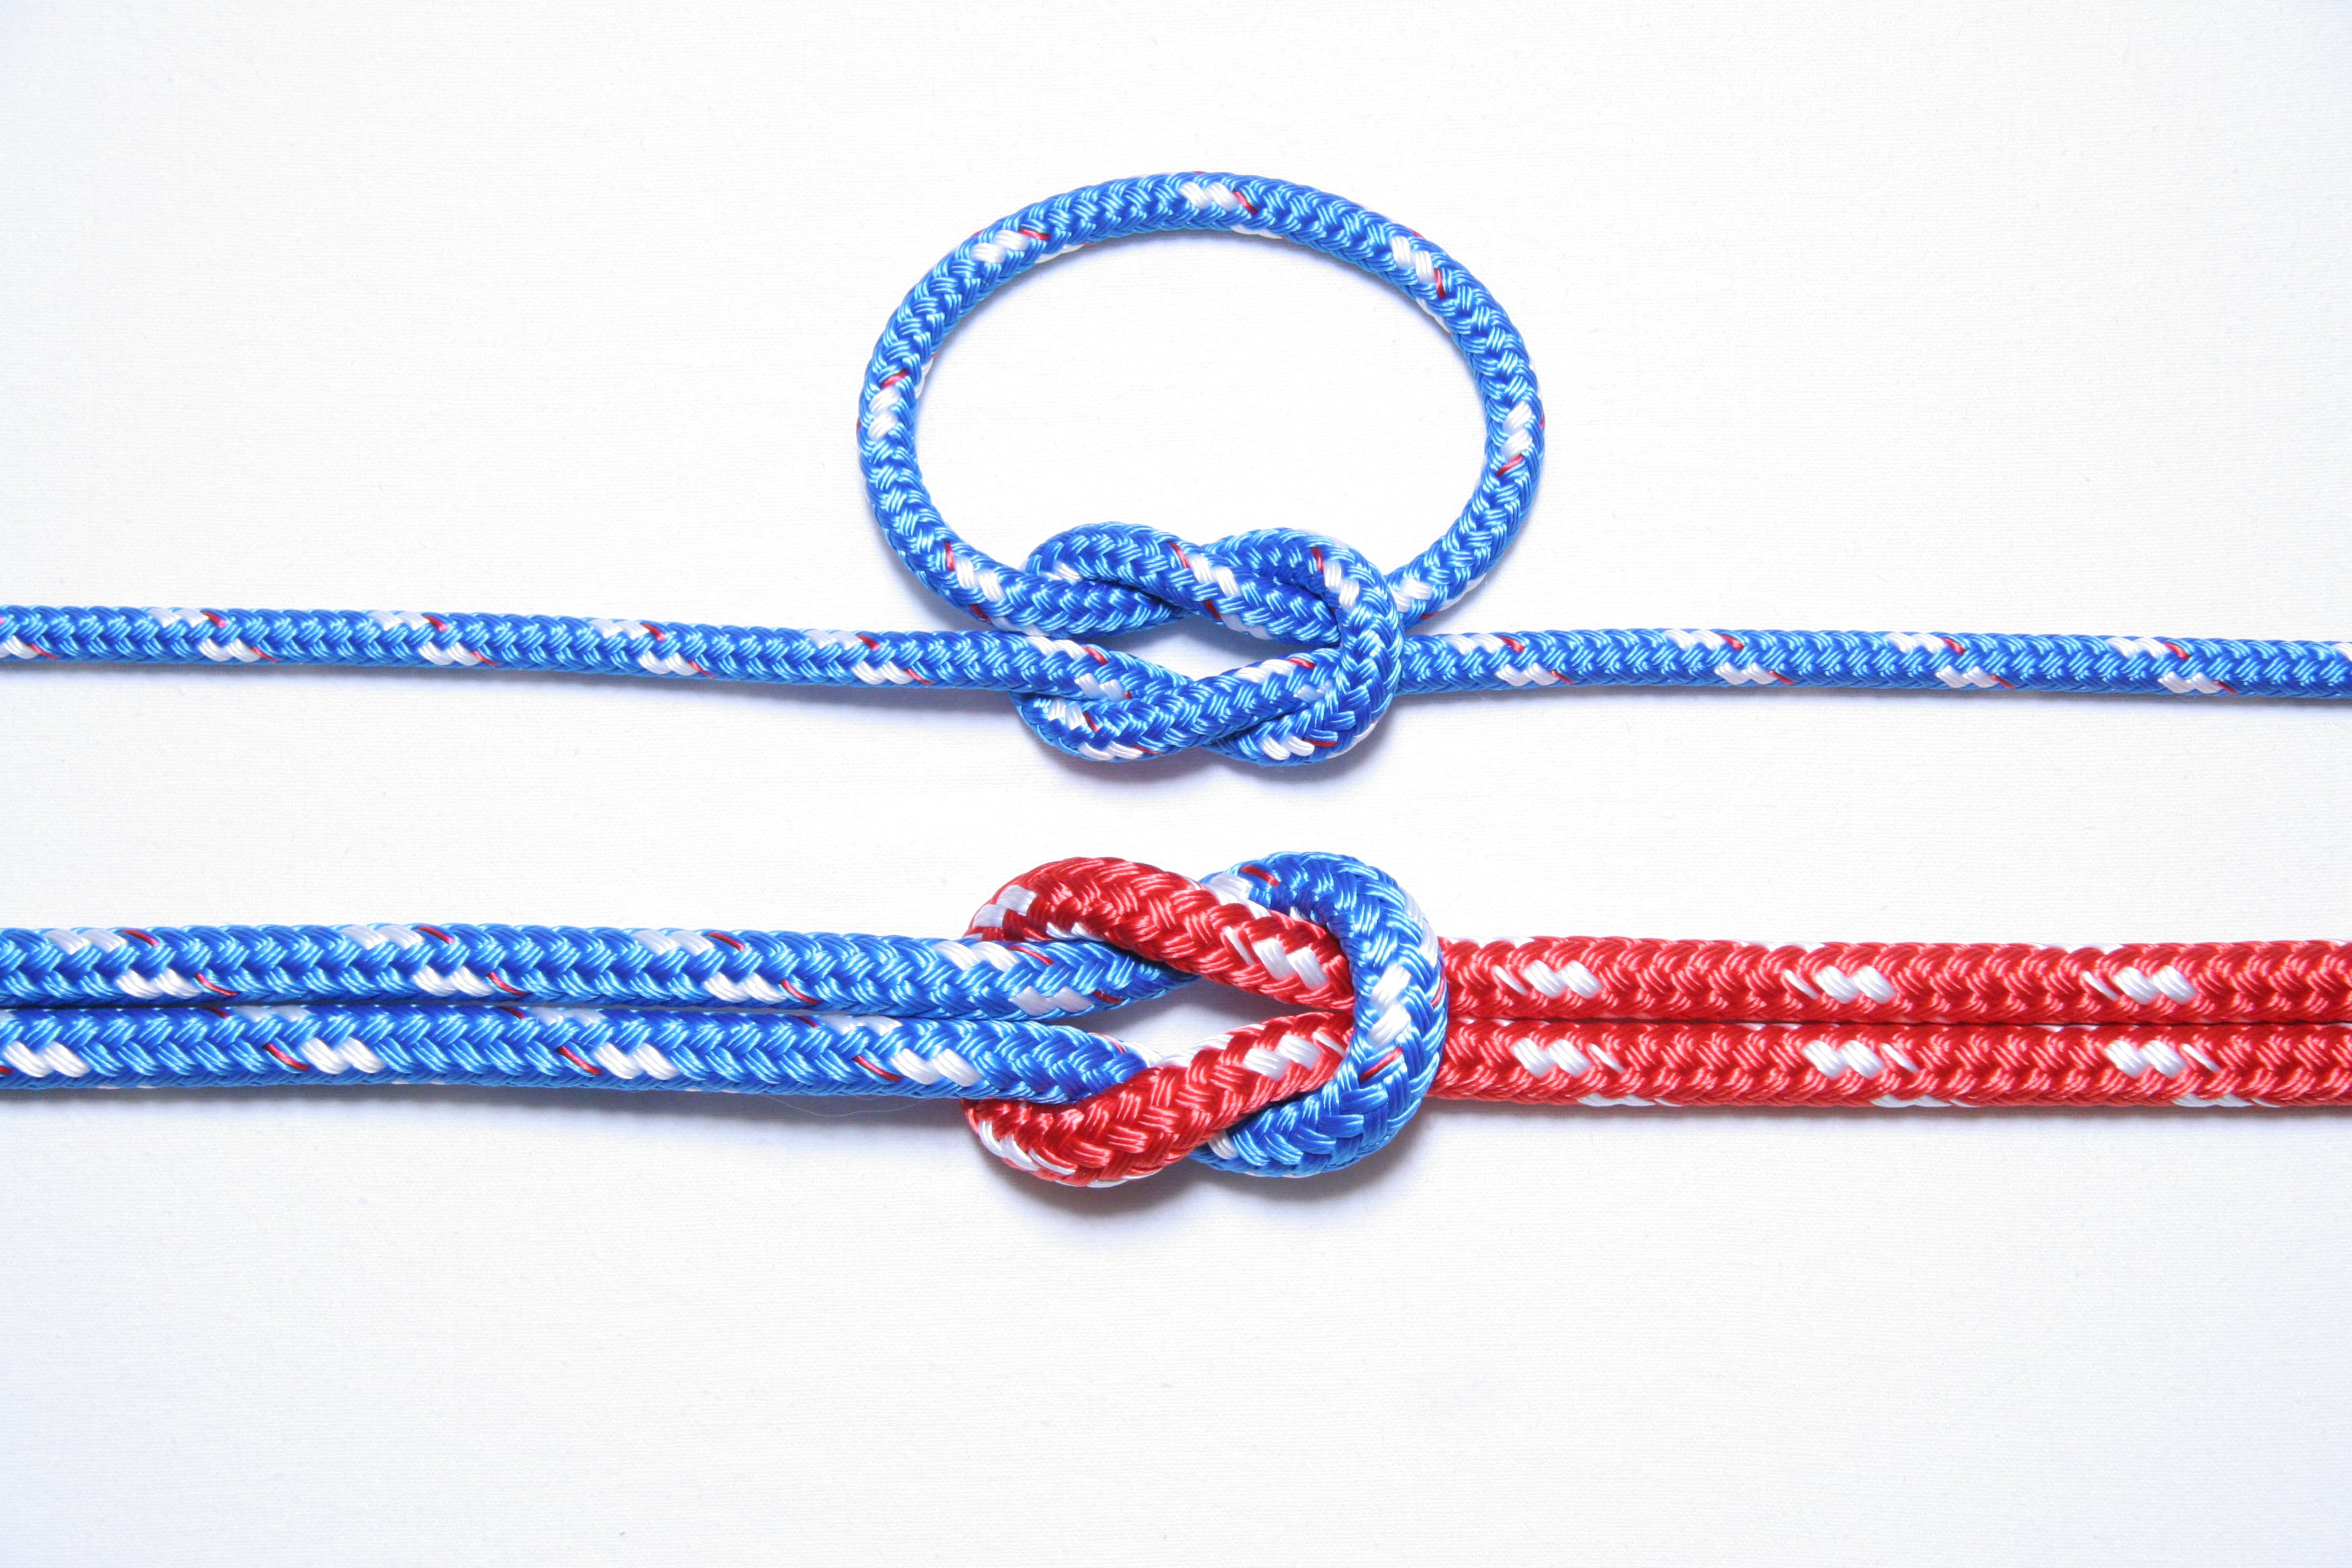 A square knot